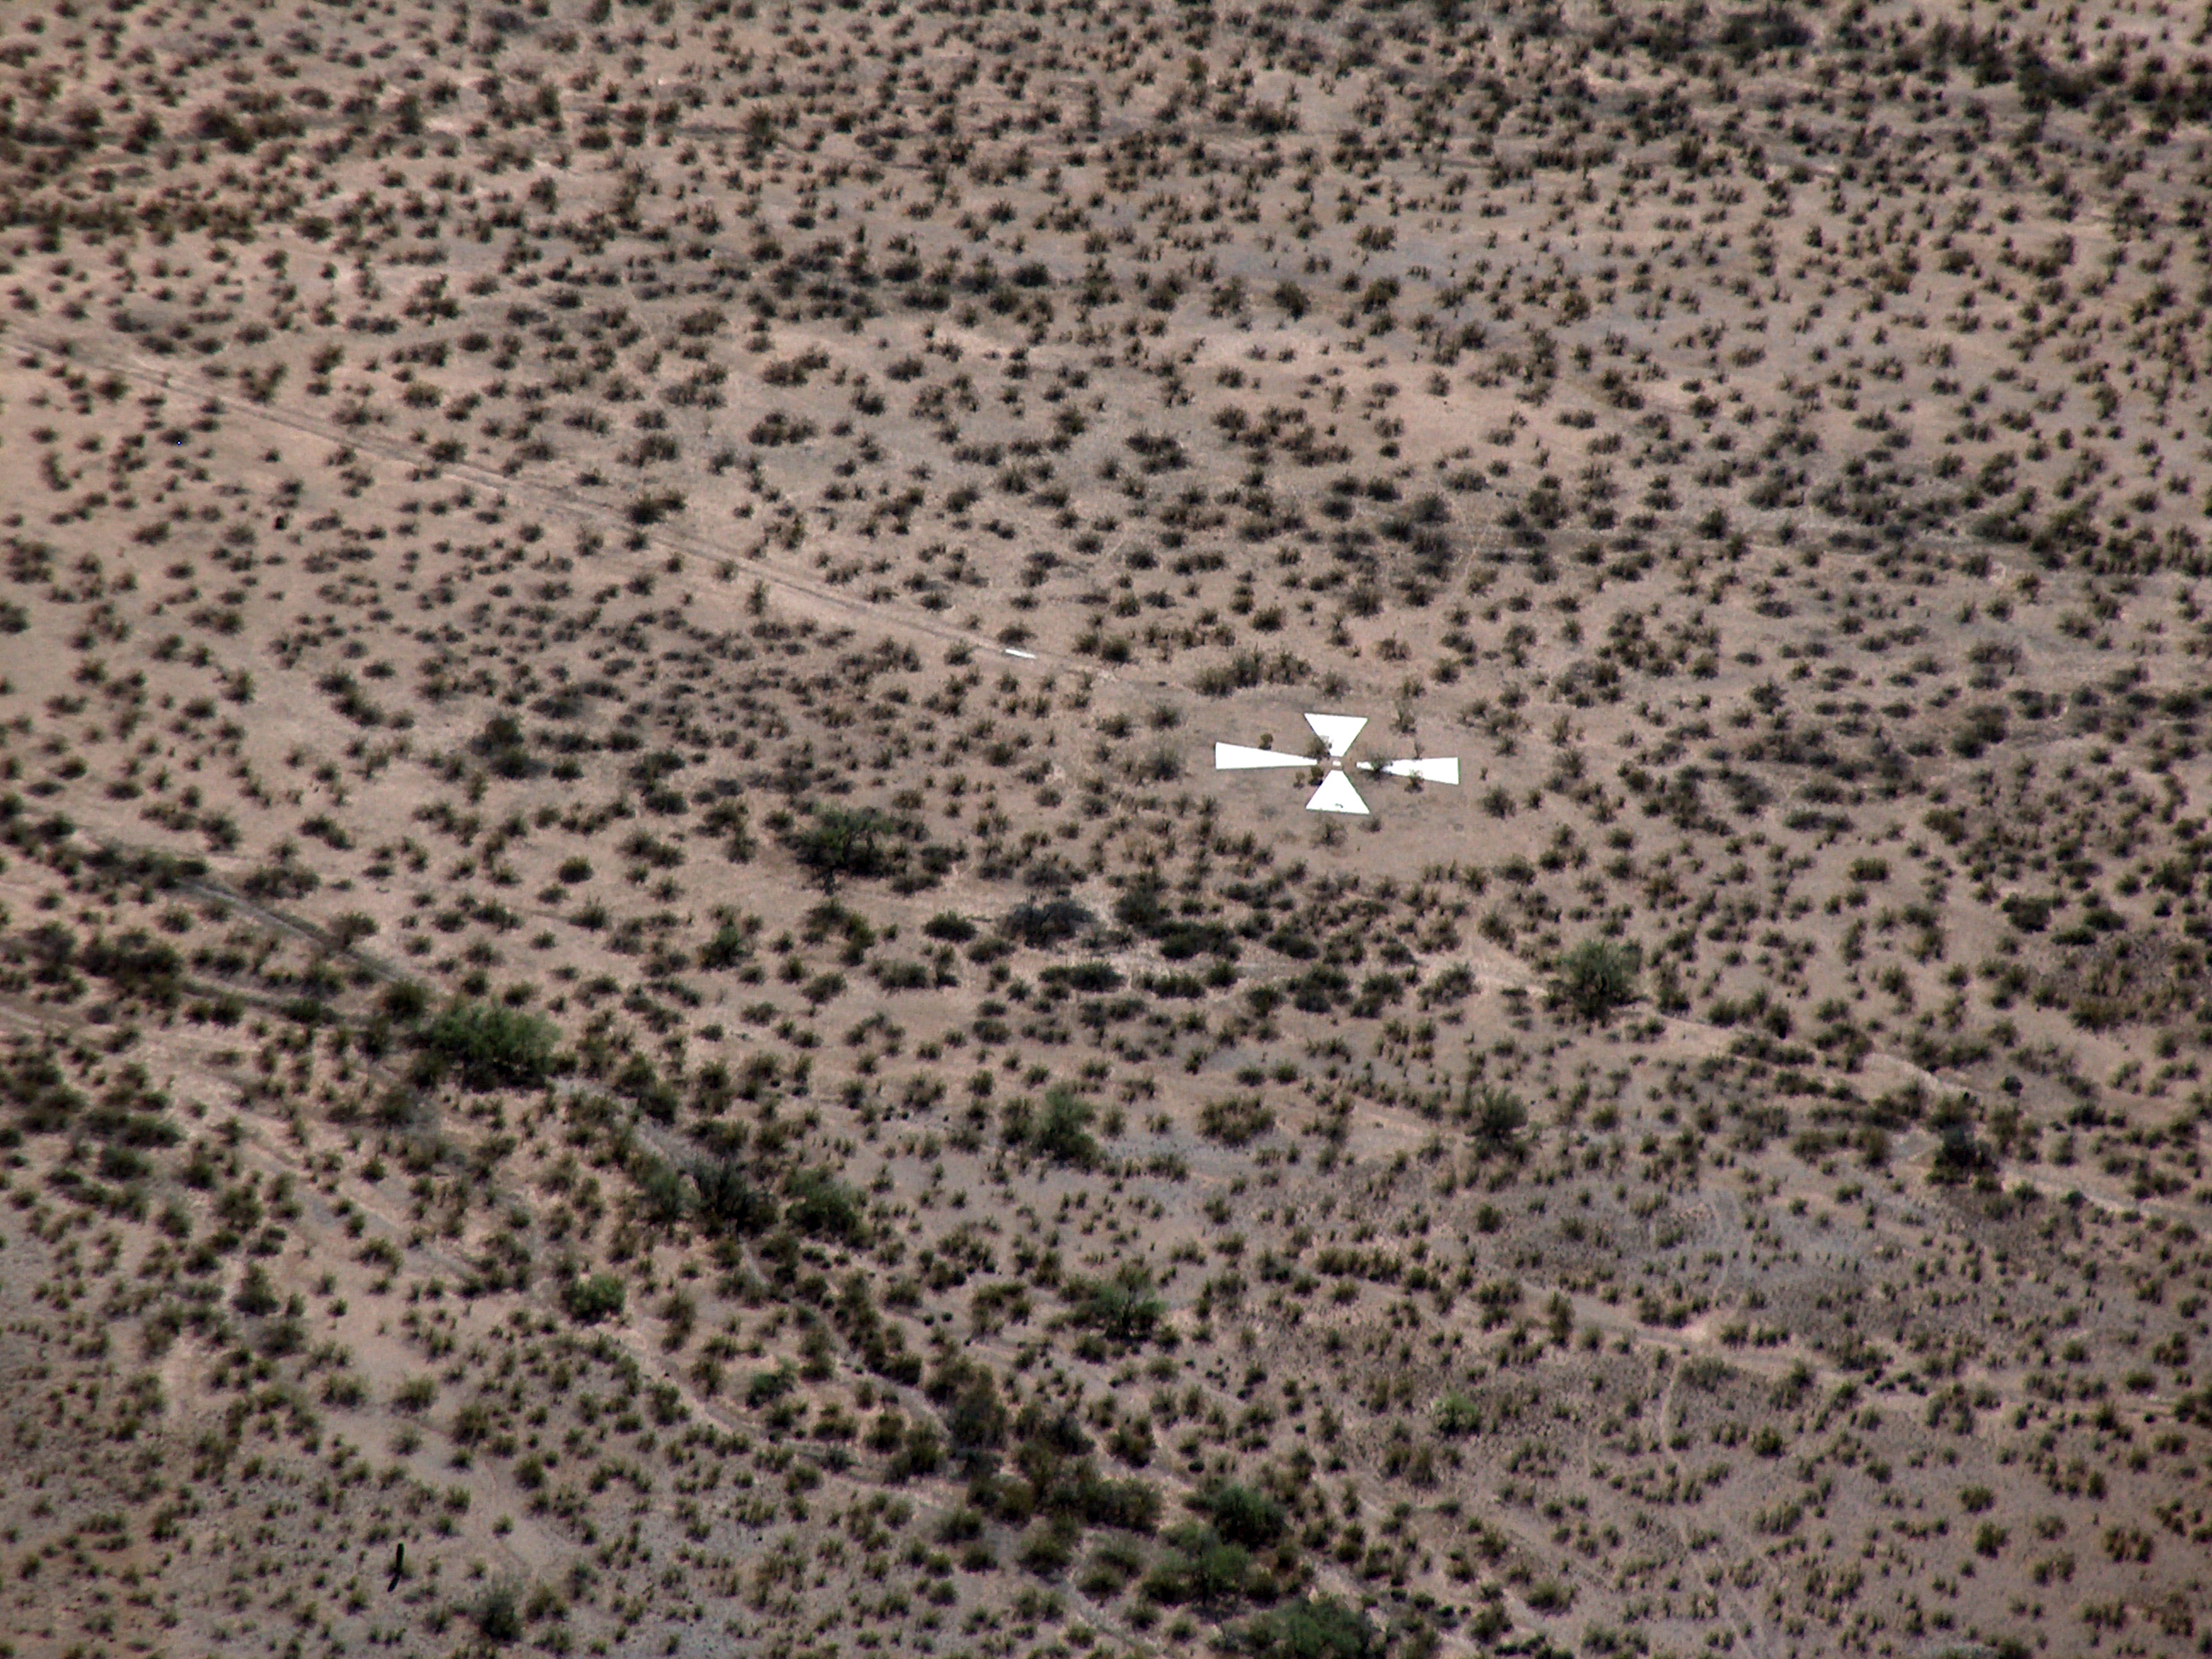 Decades-Old Mystery Put To Rest: Why Are There X's In The Desert?